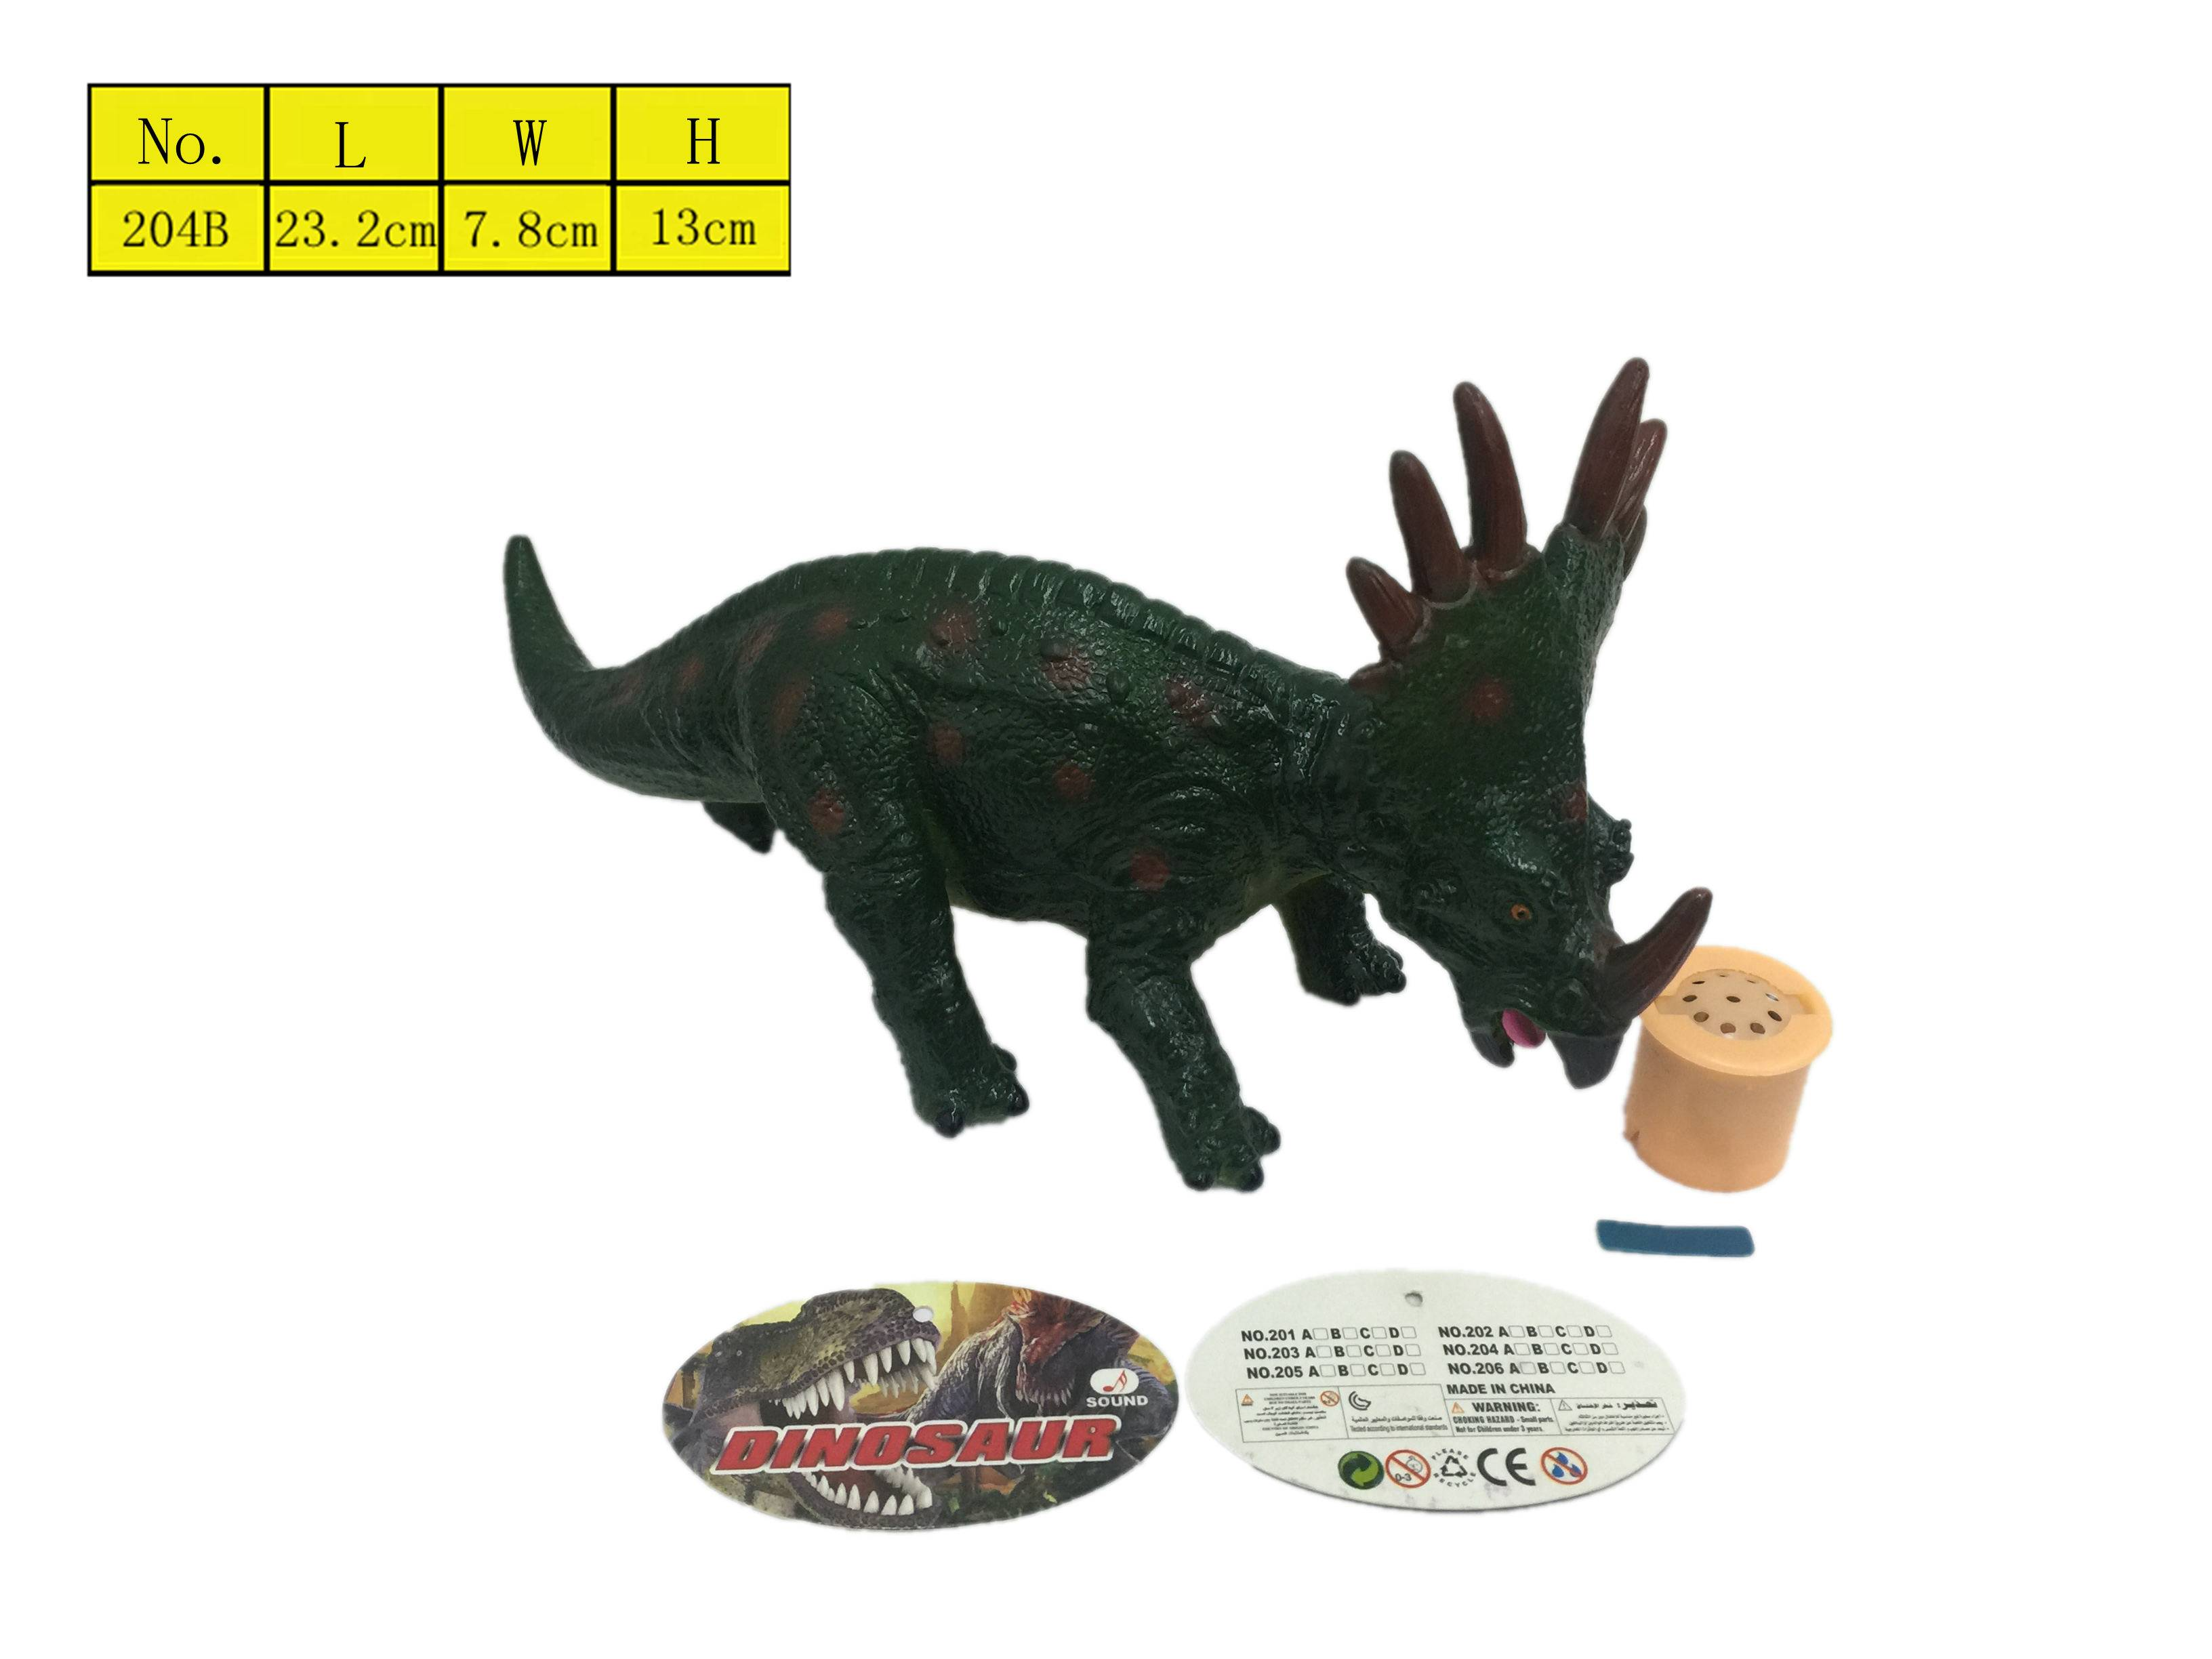 2016 new gifts for kids vivid funny vinyl dinosaur toys Jurassic Park wholesale manufacturer cheap p